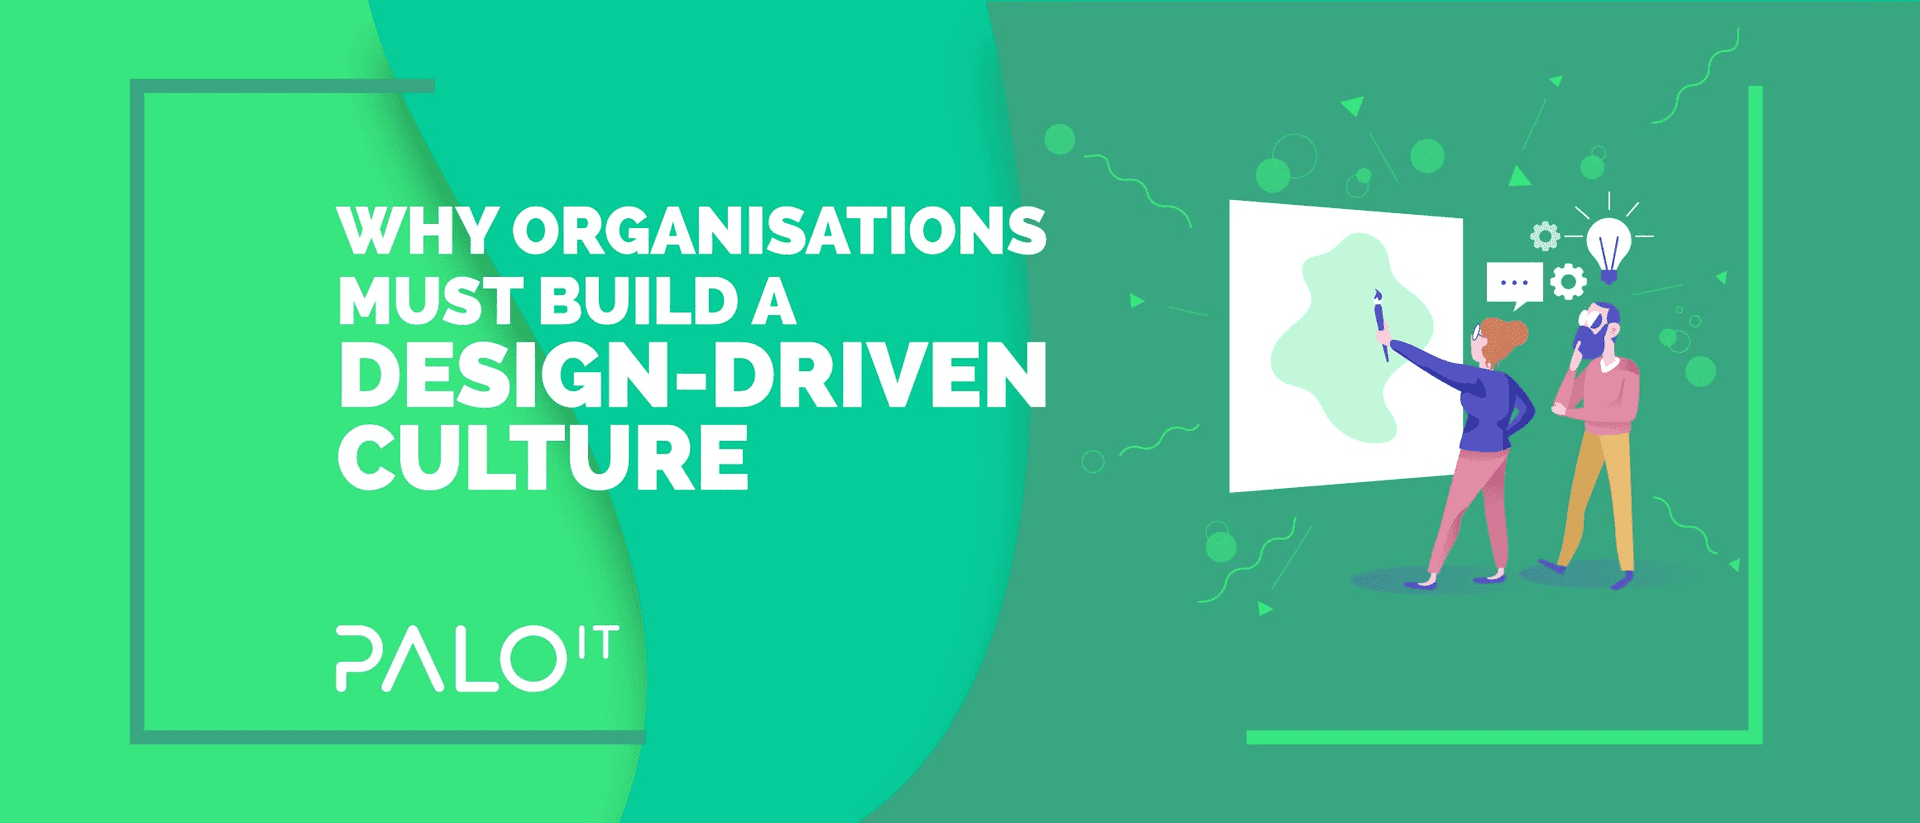 Why Organisations Must Build a Design-Driven Culture